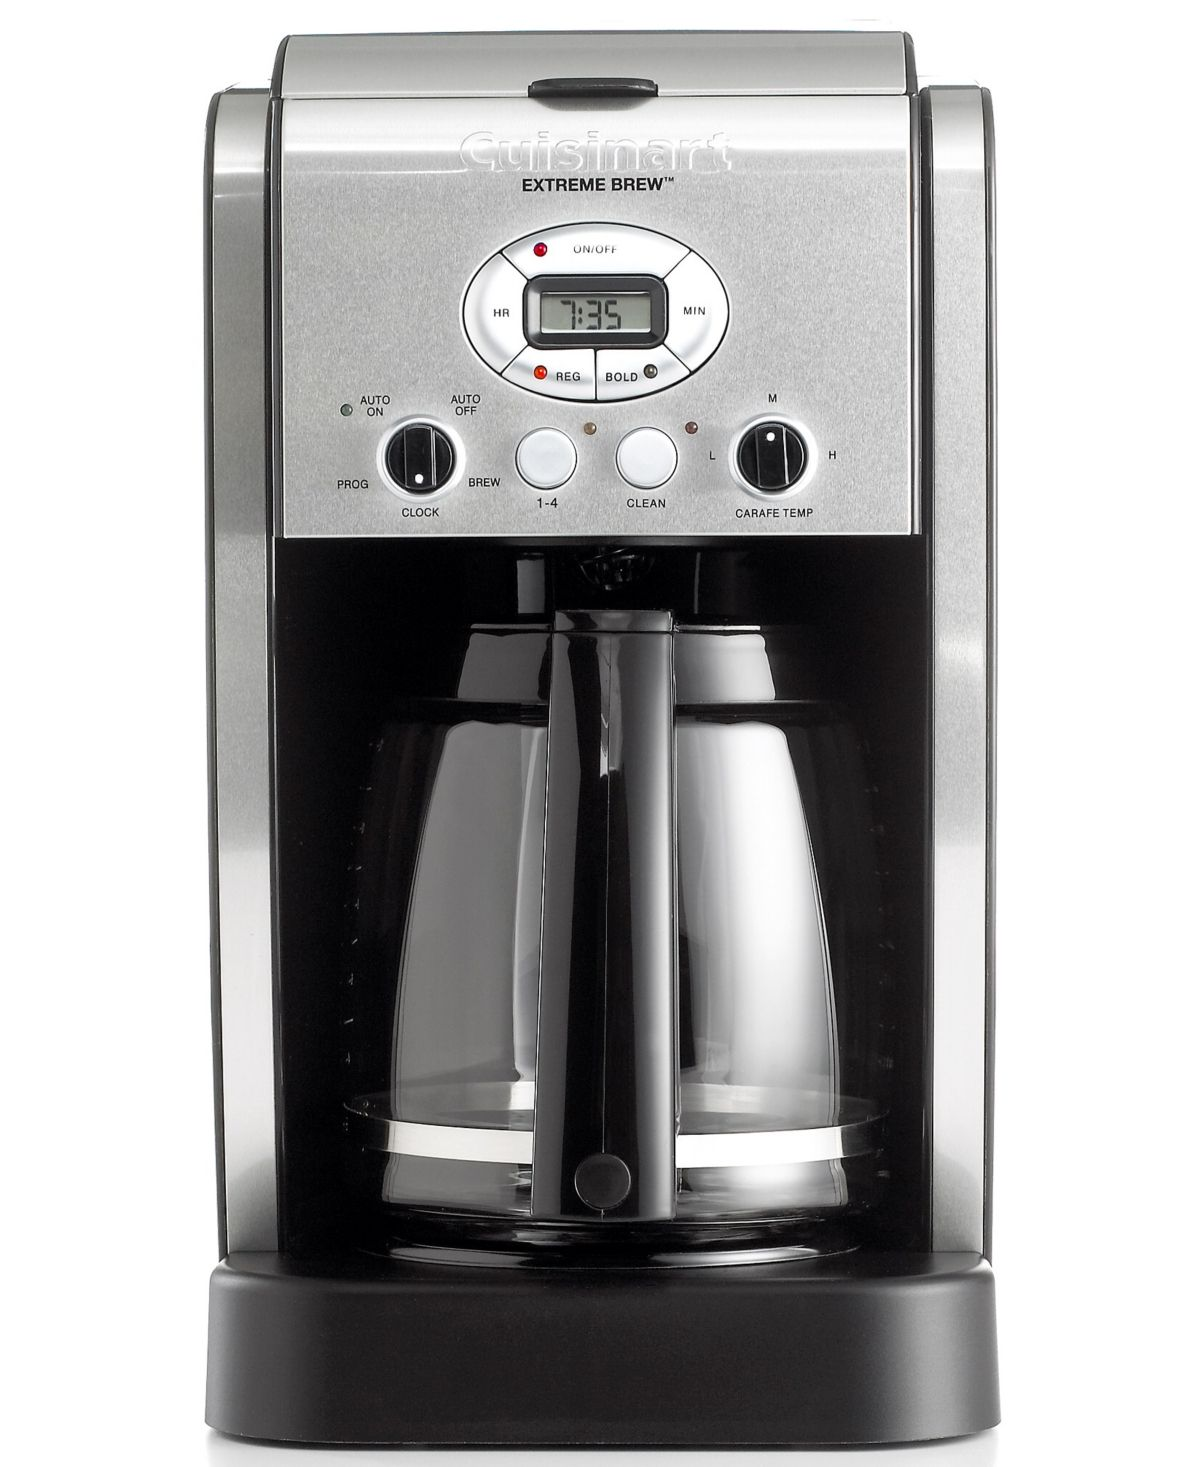 Cuisinart Dcc2650 Extreme Brew 12 Cup Coffee Maker in